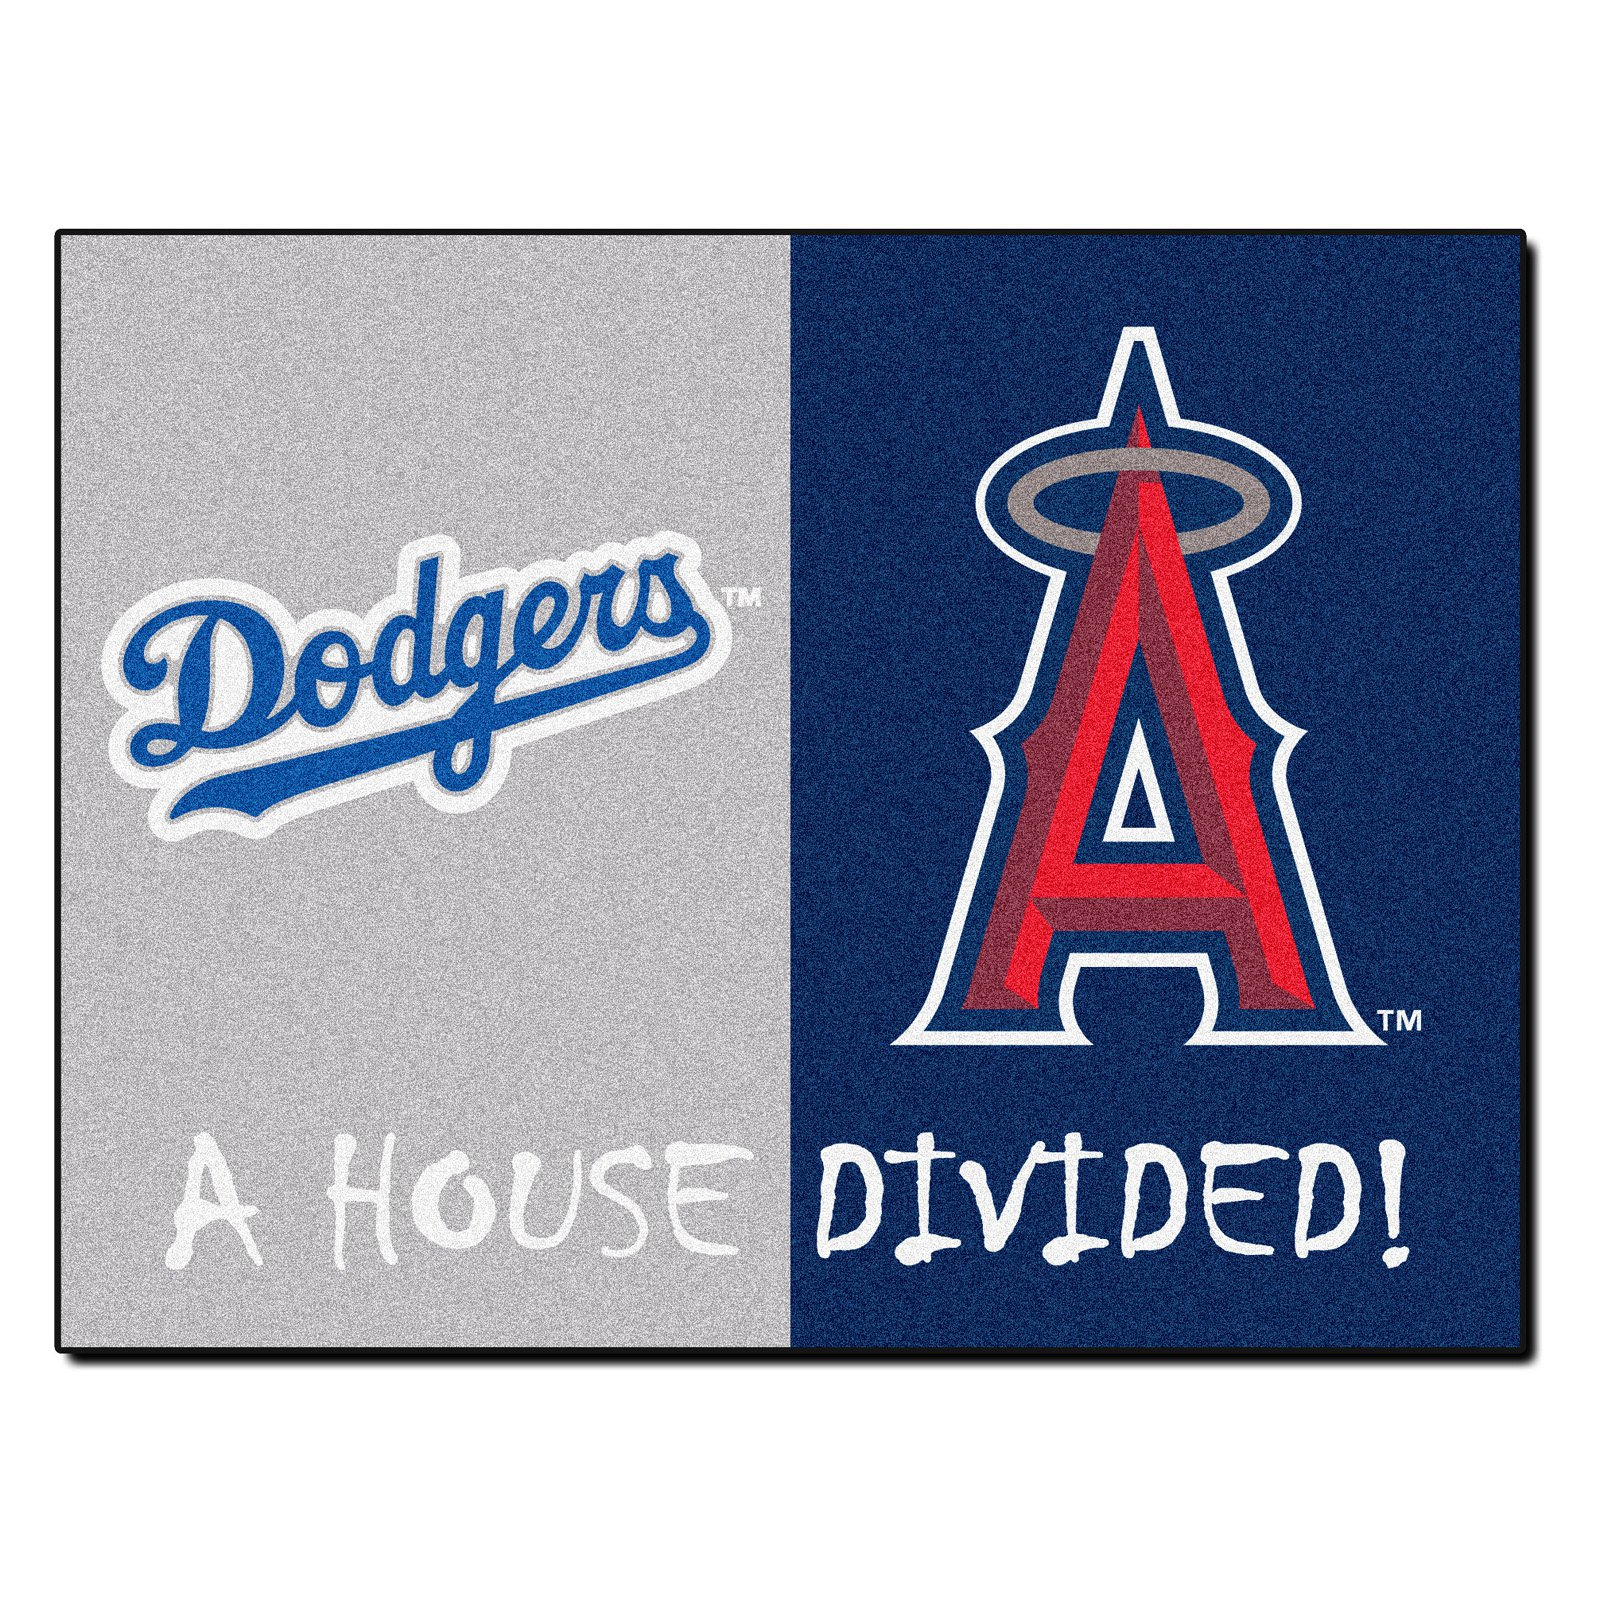 FANMATS MLB House Divided - Dodgers / Angels  House Divided Mat